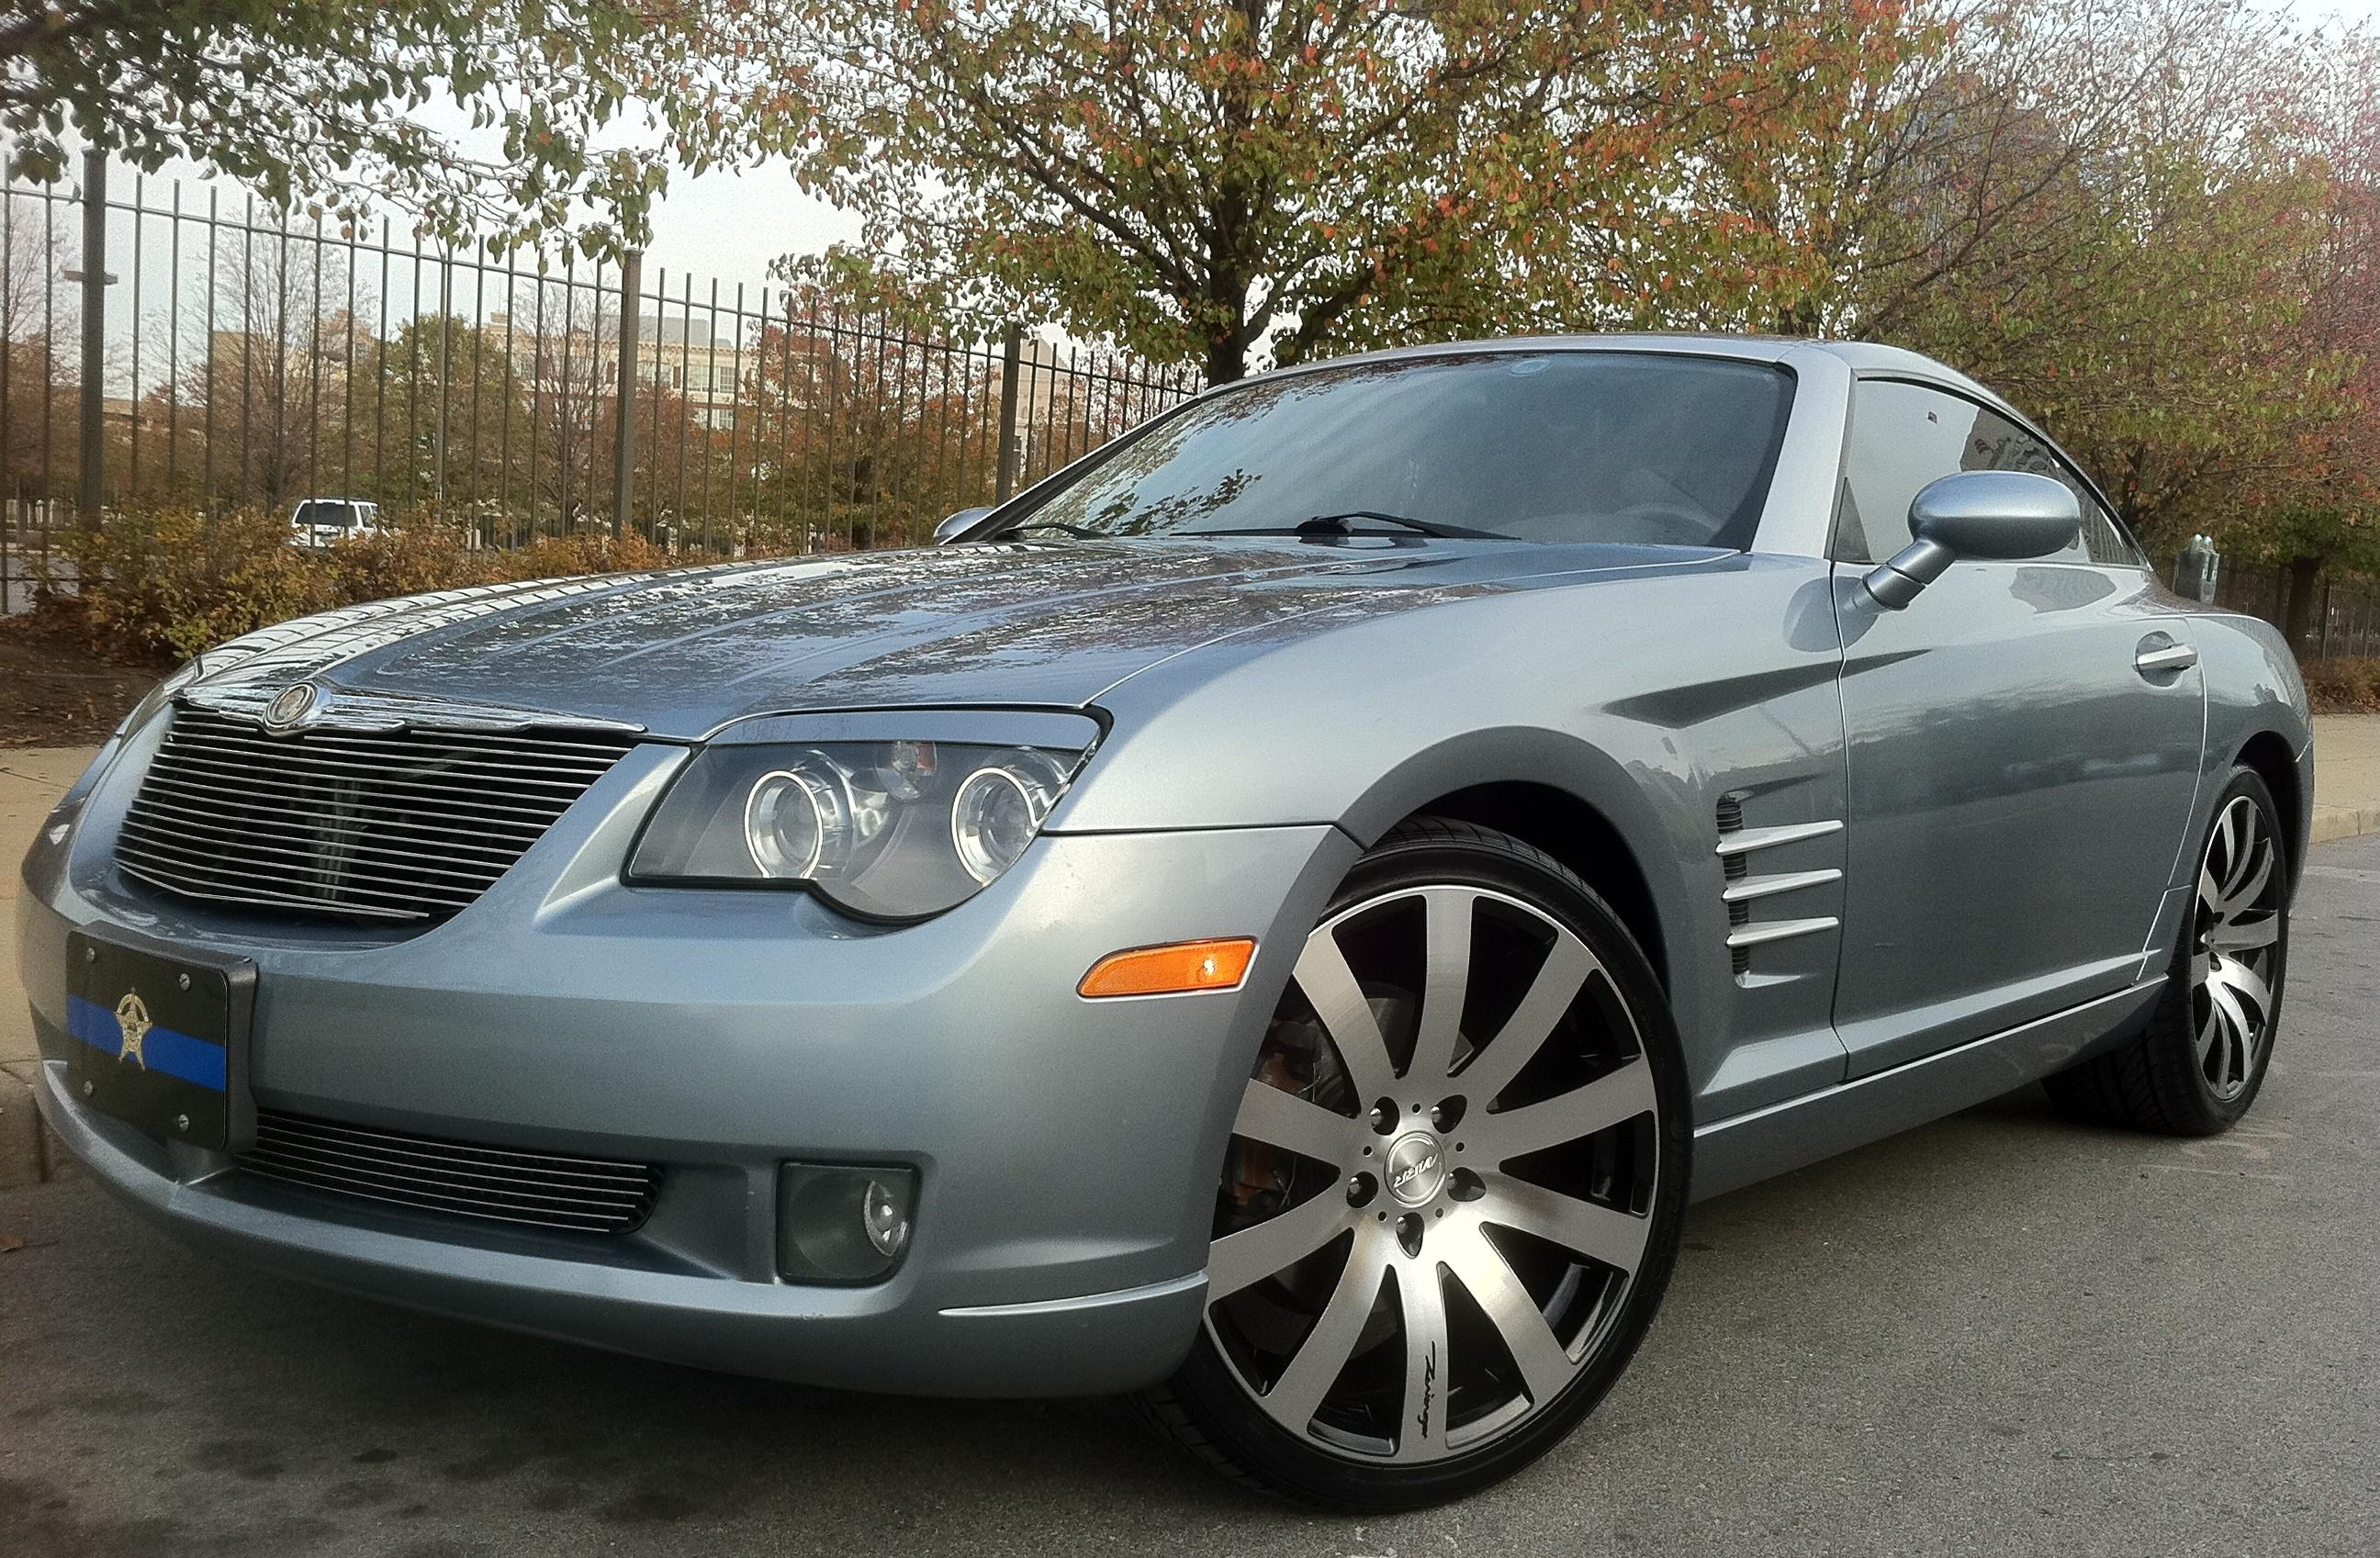 questions pricing helpful crossfire am people chrysler pic buick in i interested the discussion found cars shopping this